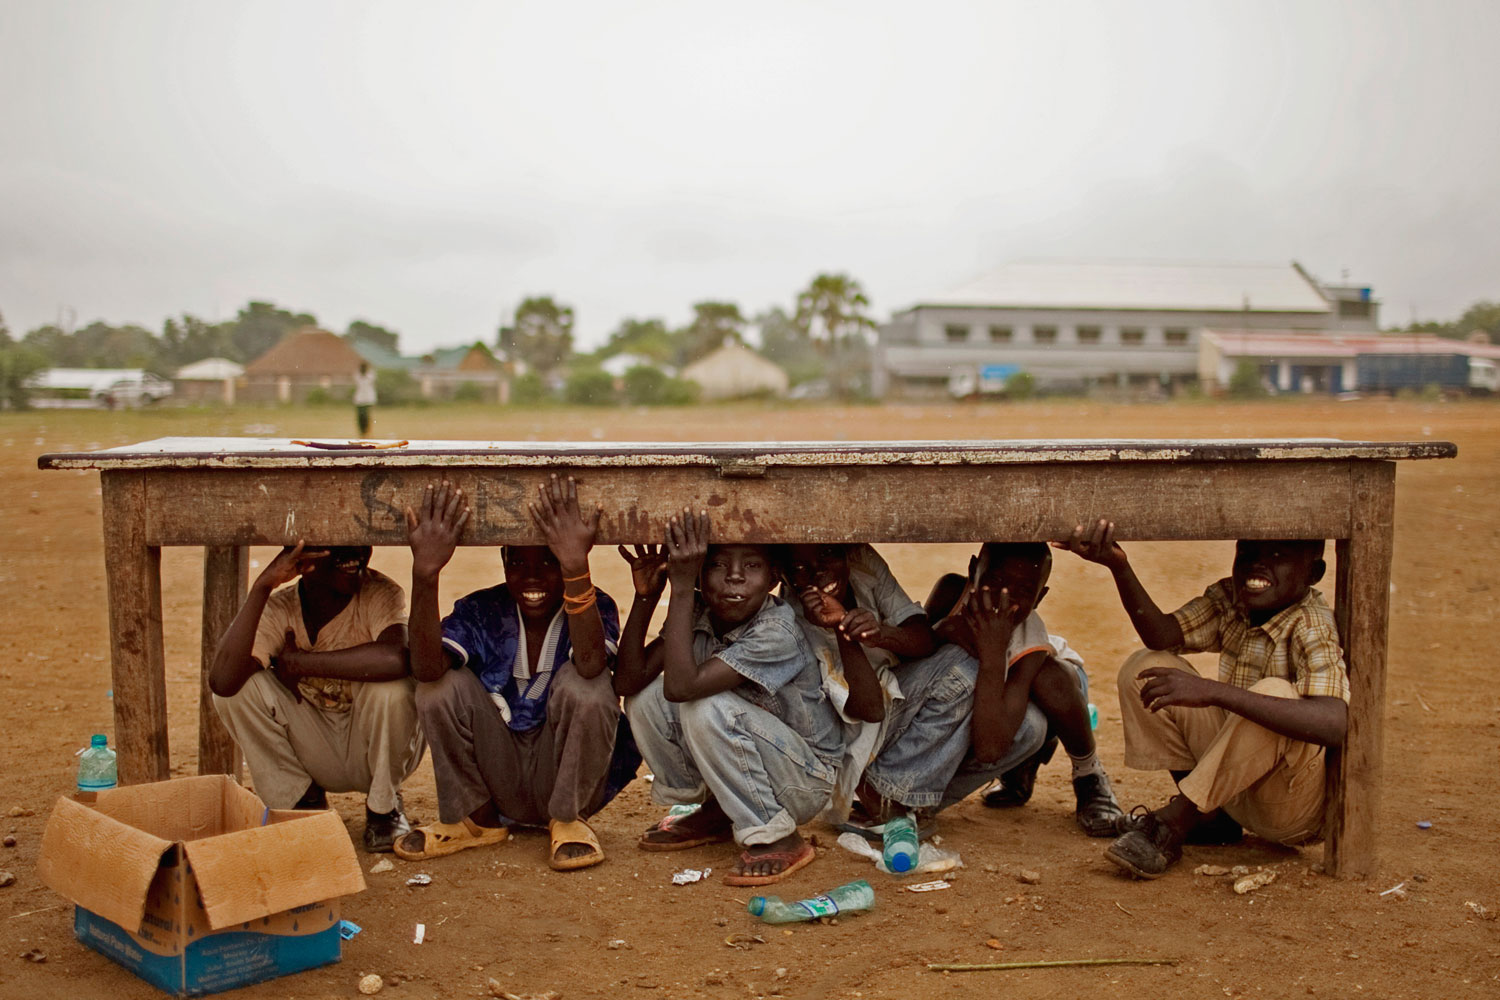 July 4, 2011. Southern Sudanese boys take shelter from afternoon rains that disrupted rehearsals for independence day celebrations in the capital city of Juba. Southern Sudan is set to declare independence from the north on July 9.